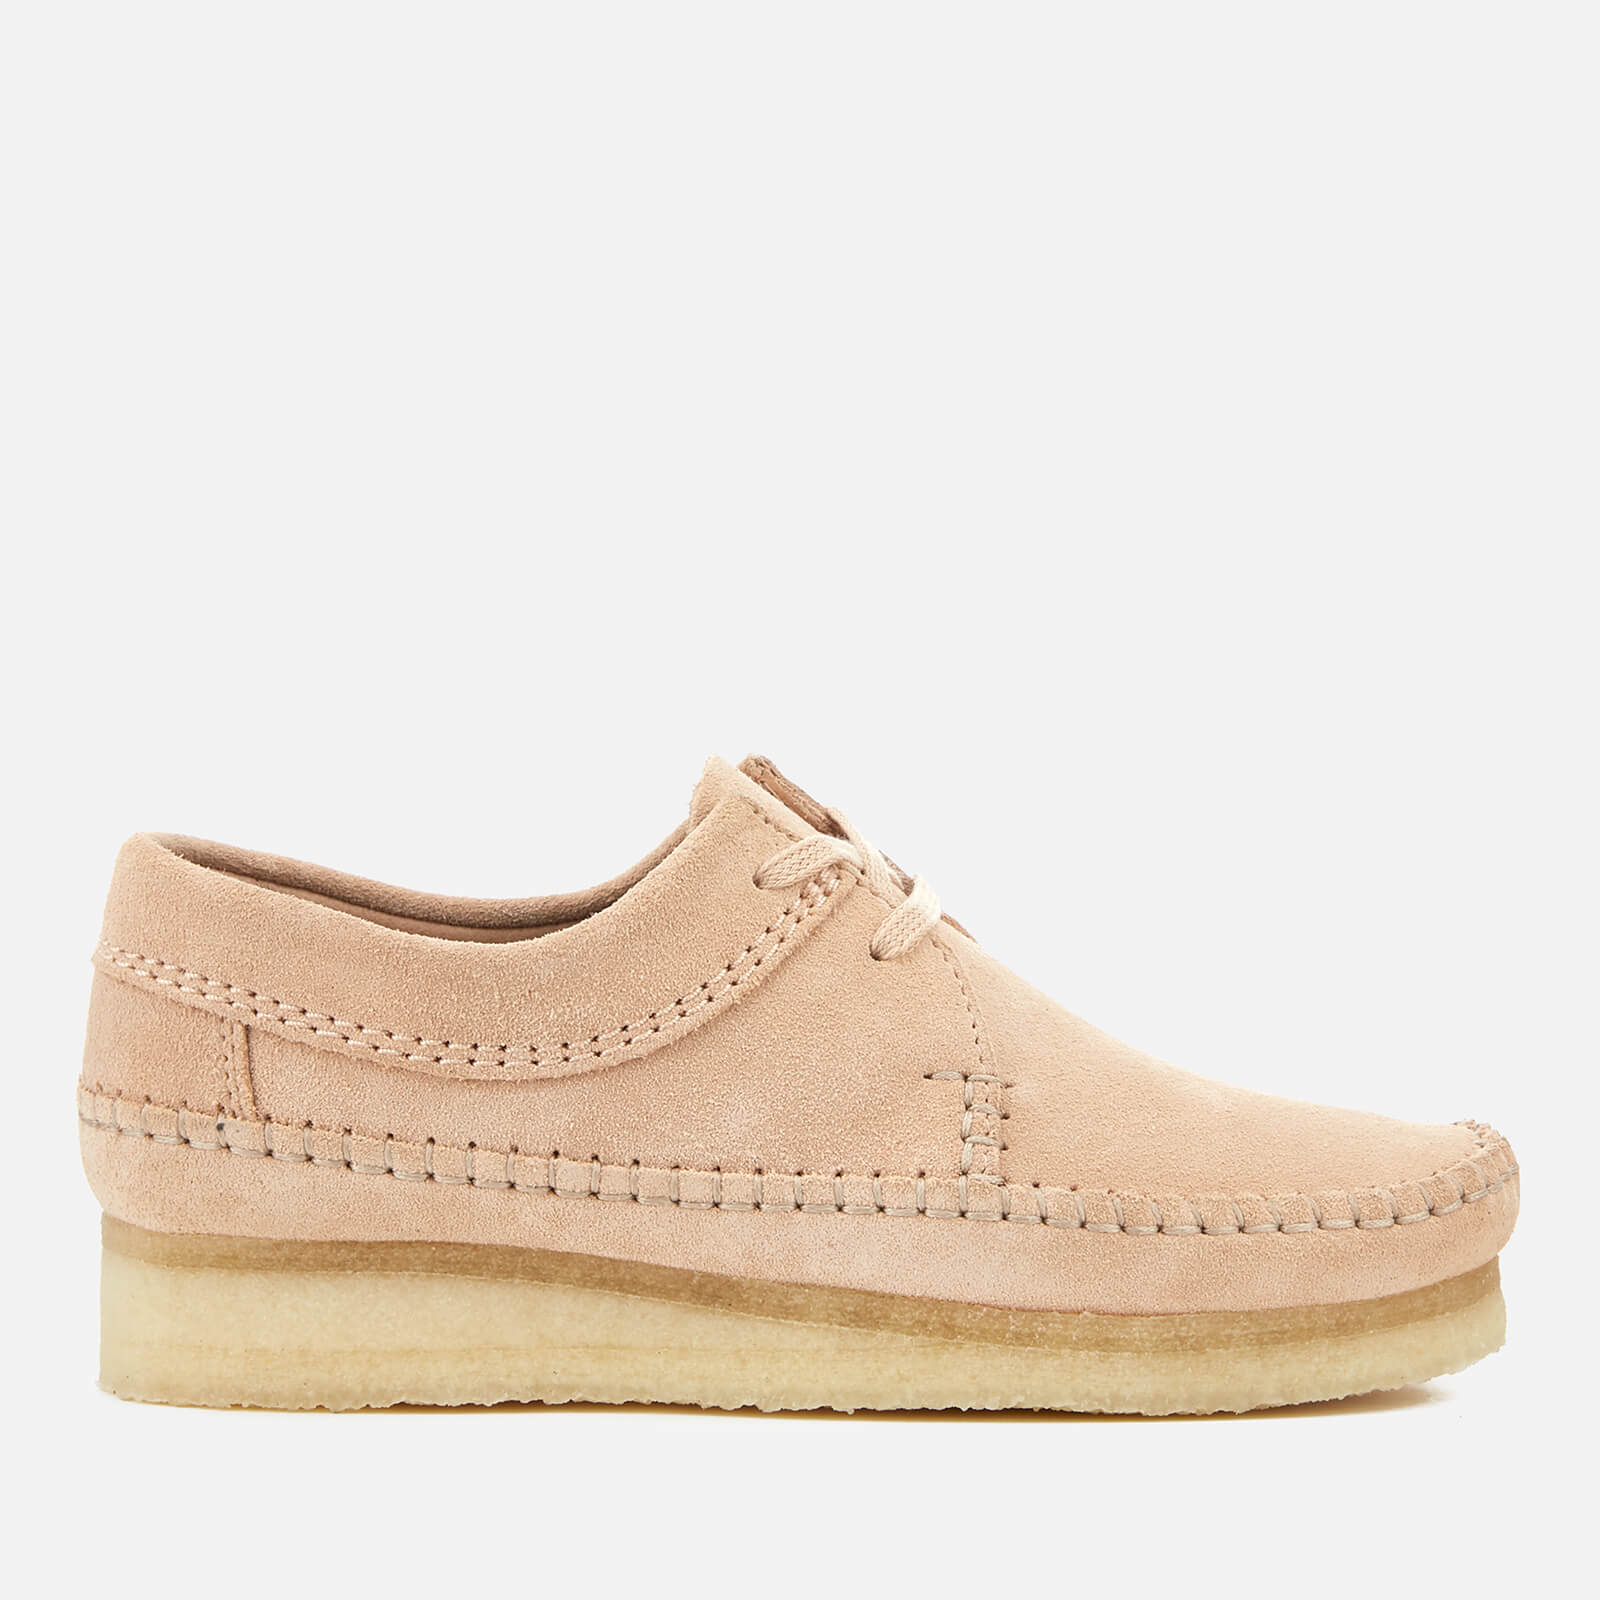 Weaver Suede Shoes - Light Pink